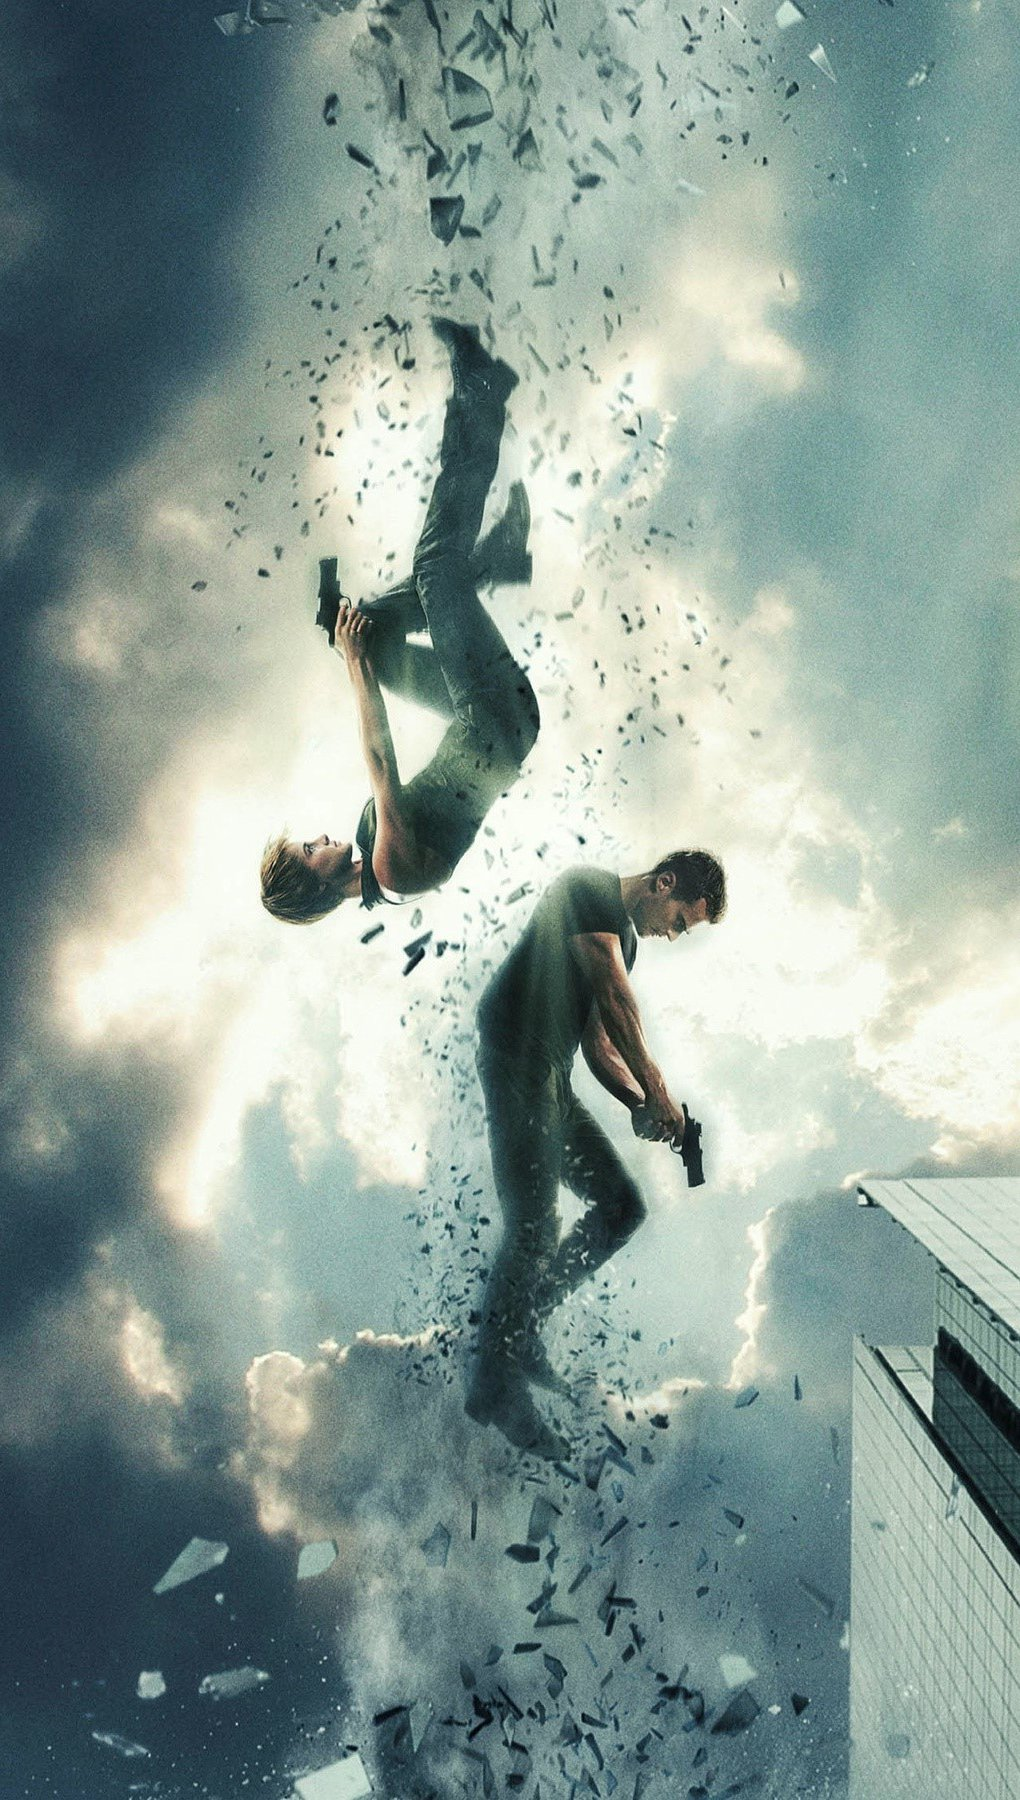 Wallpaper Still from Insurgente Vertical